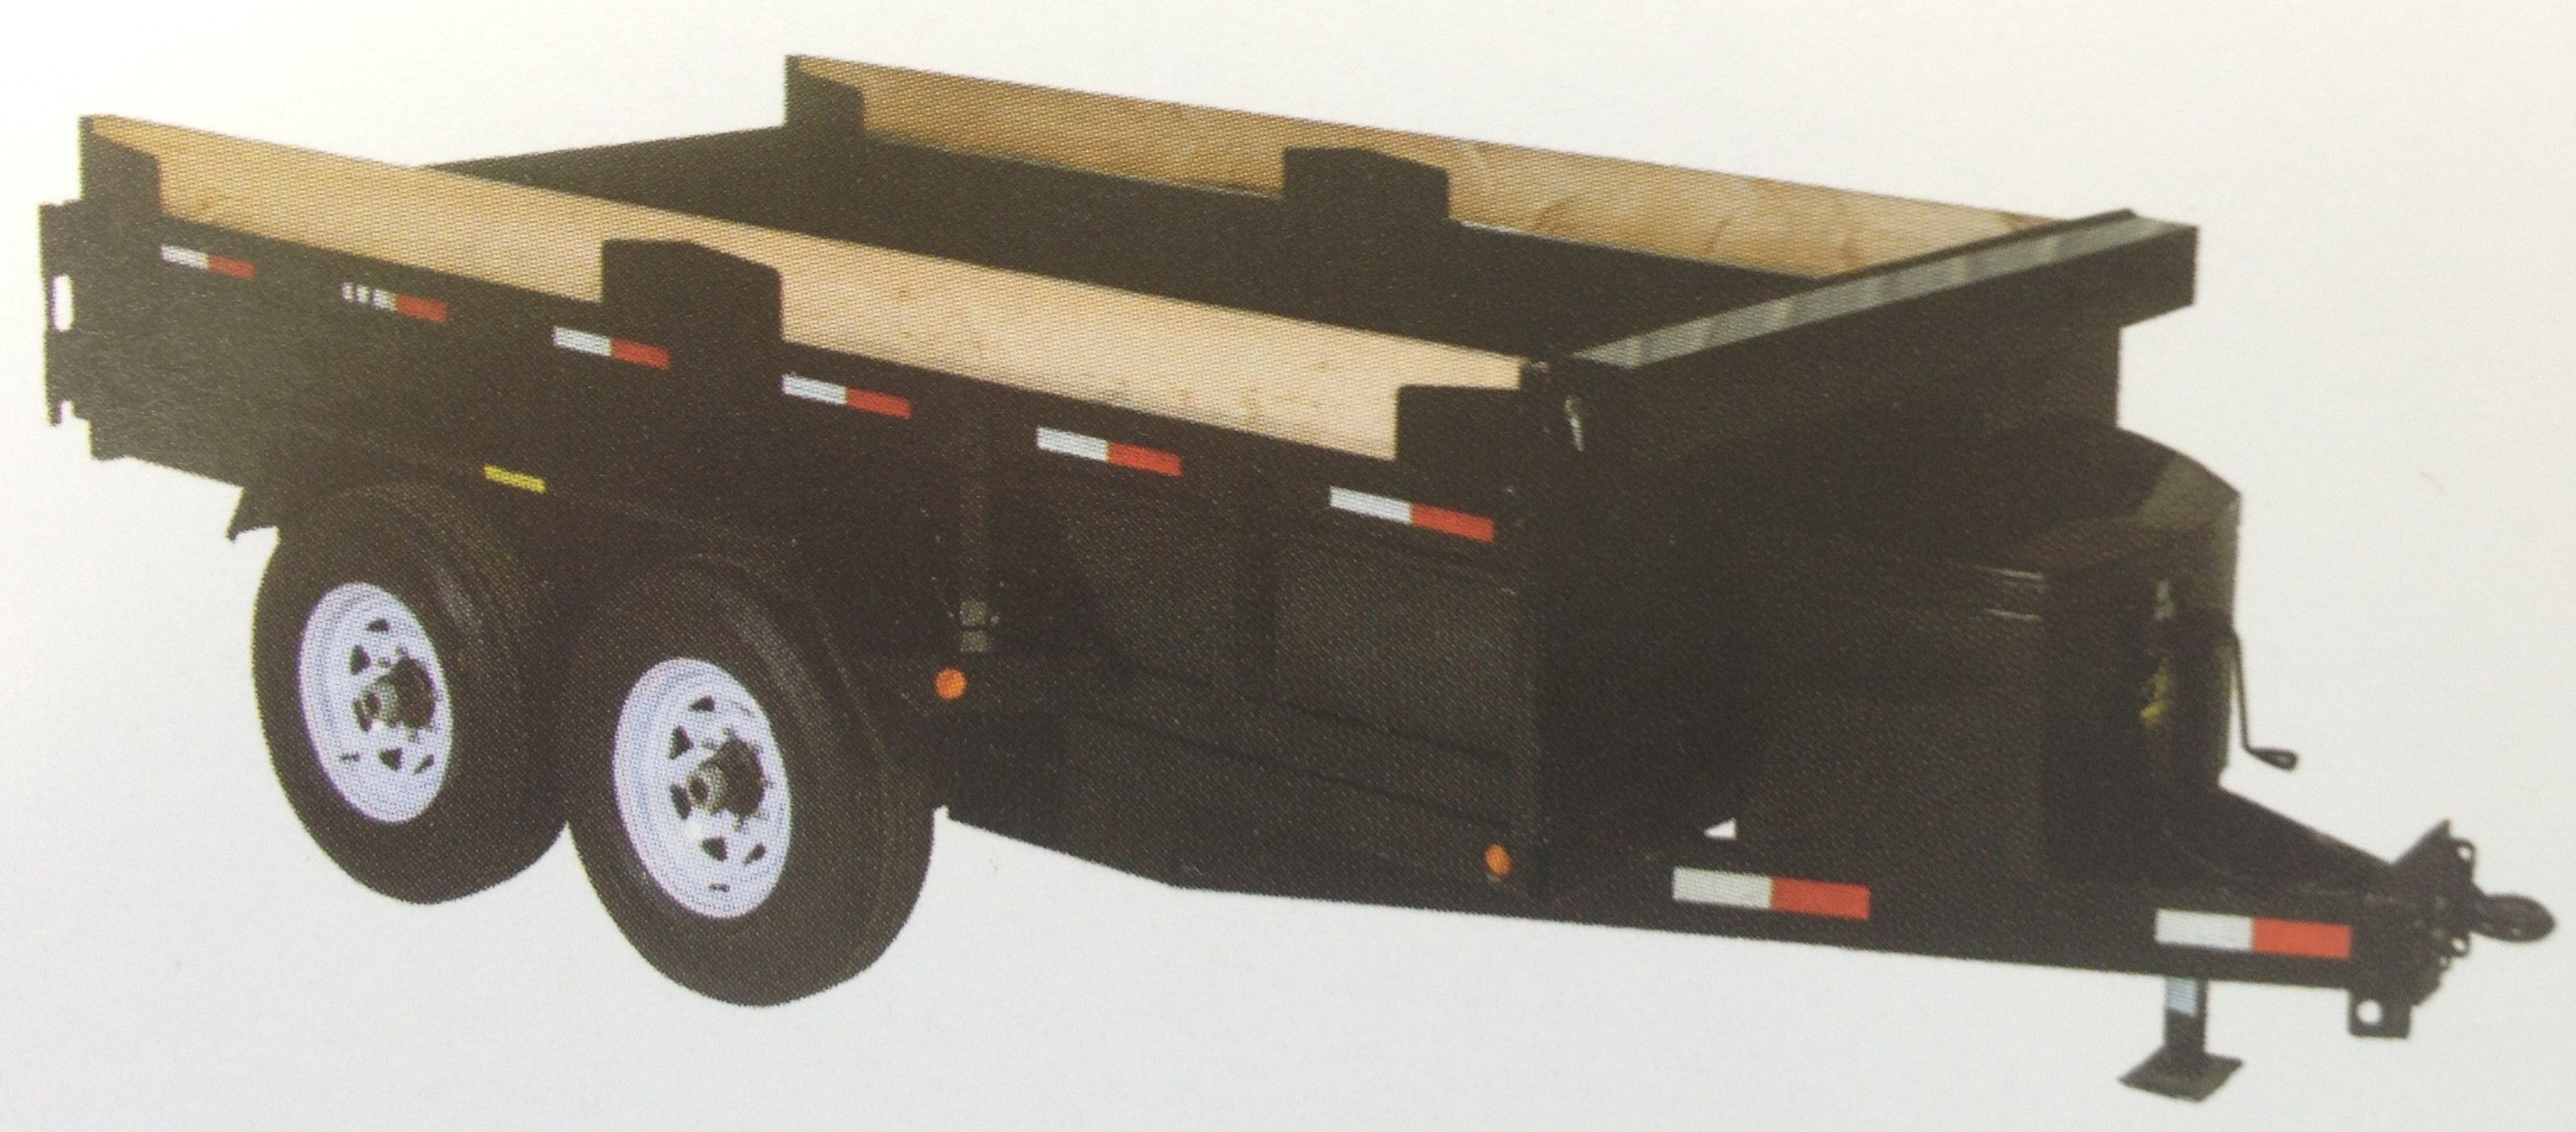 Medium Duty Dump Tandem Trailer MDD610 by JDJ (6' W x 10' L) with 3' high sides